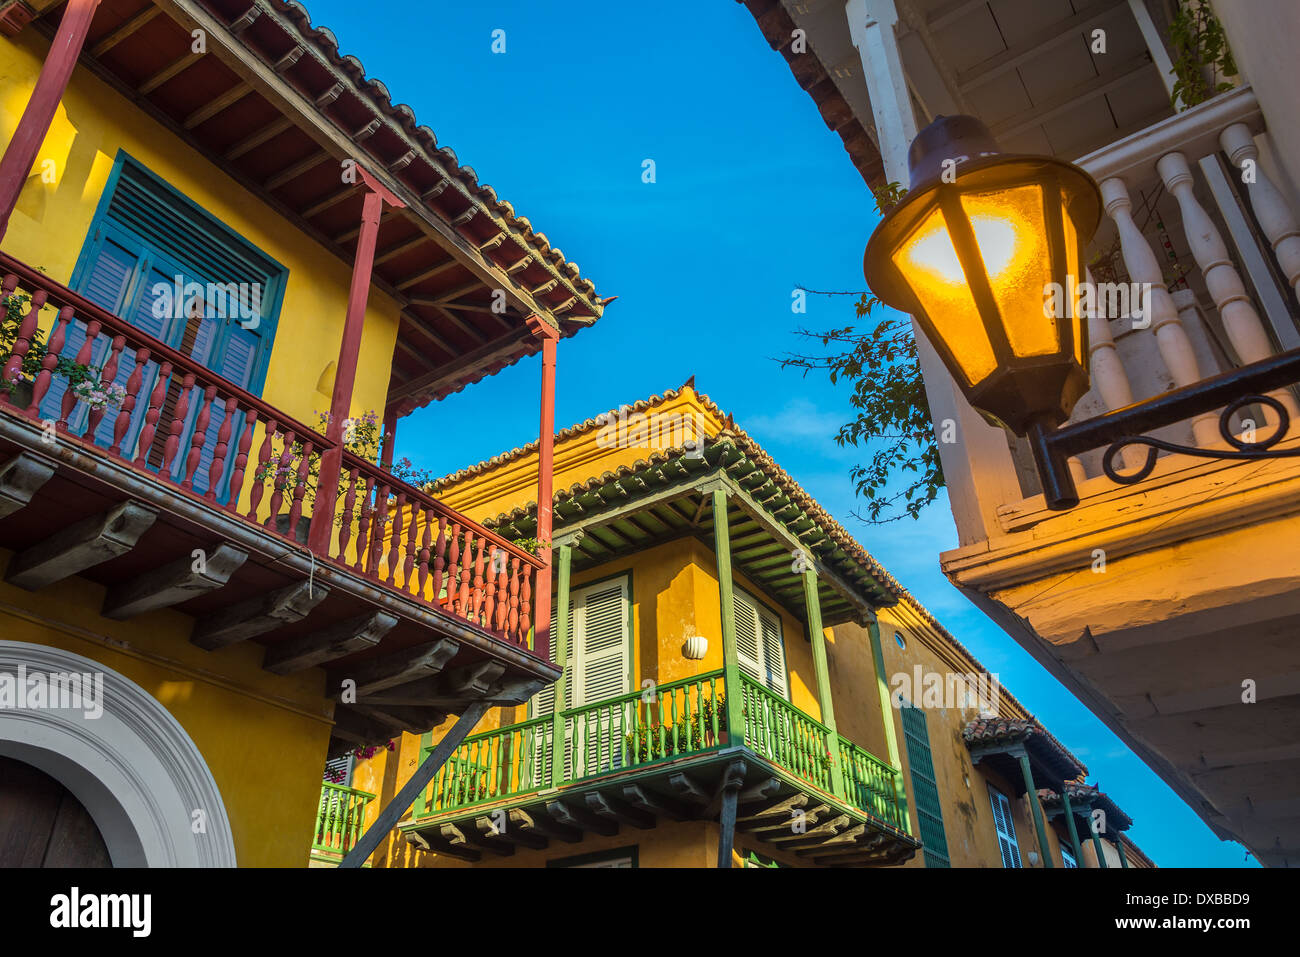 Street corner in Cartagena, Colombia where three old colonial balconies converge - Stock Image